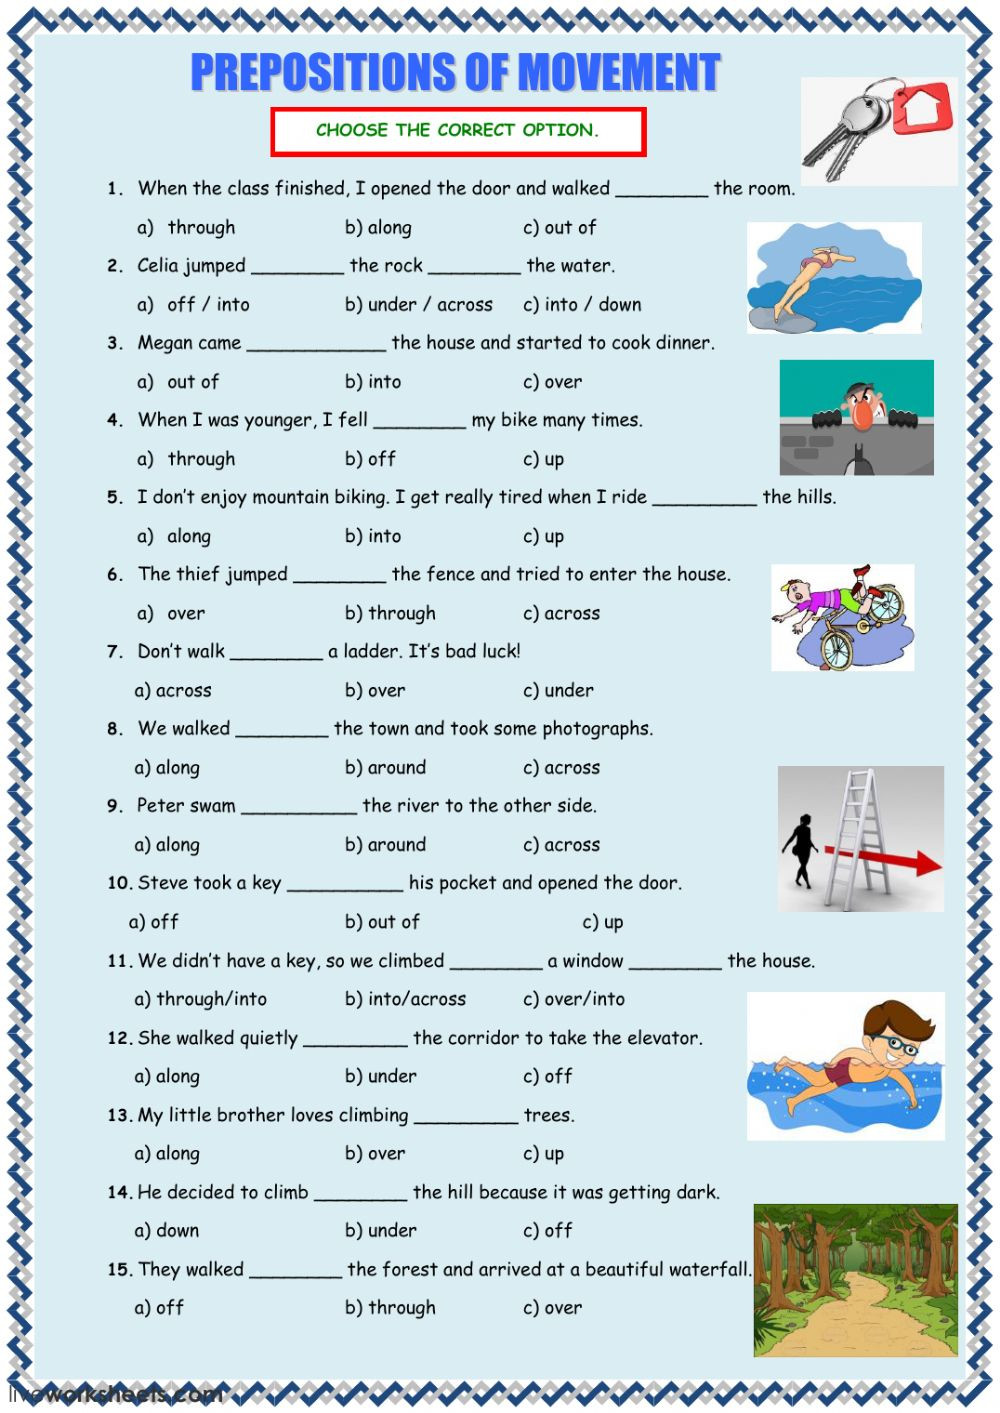 Preposition Worksheets for Grade 1 Prepositions Of Movement Interactive Worksheet